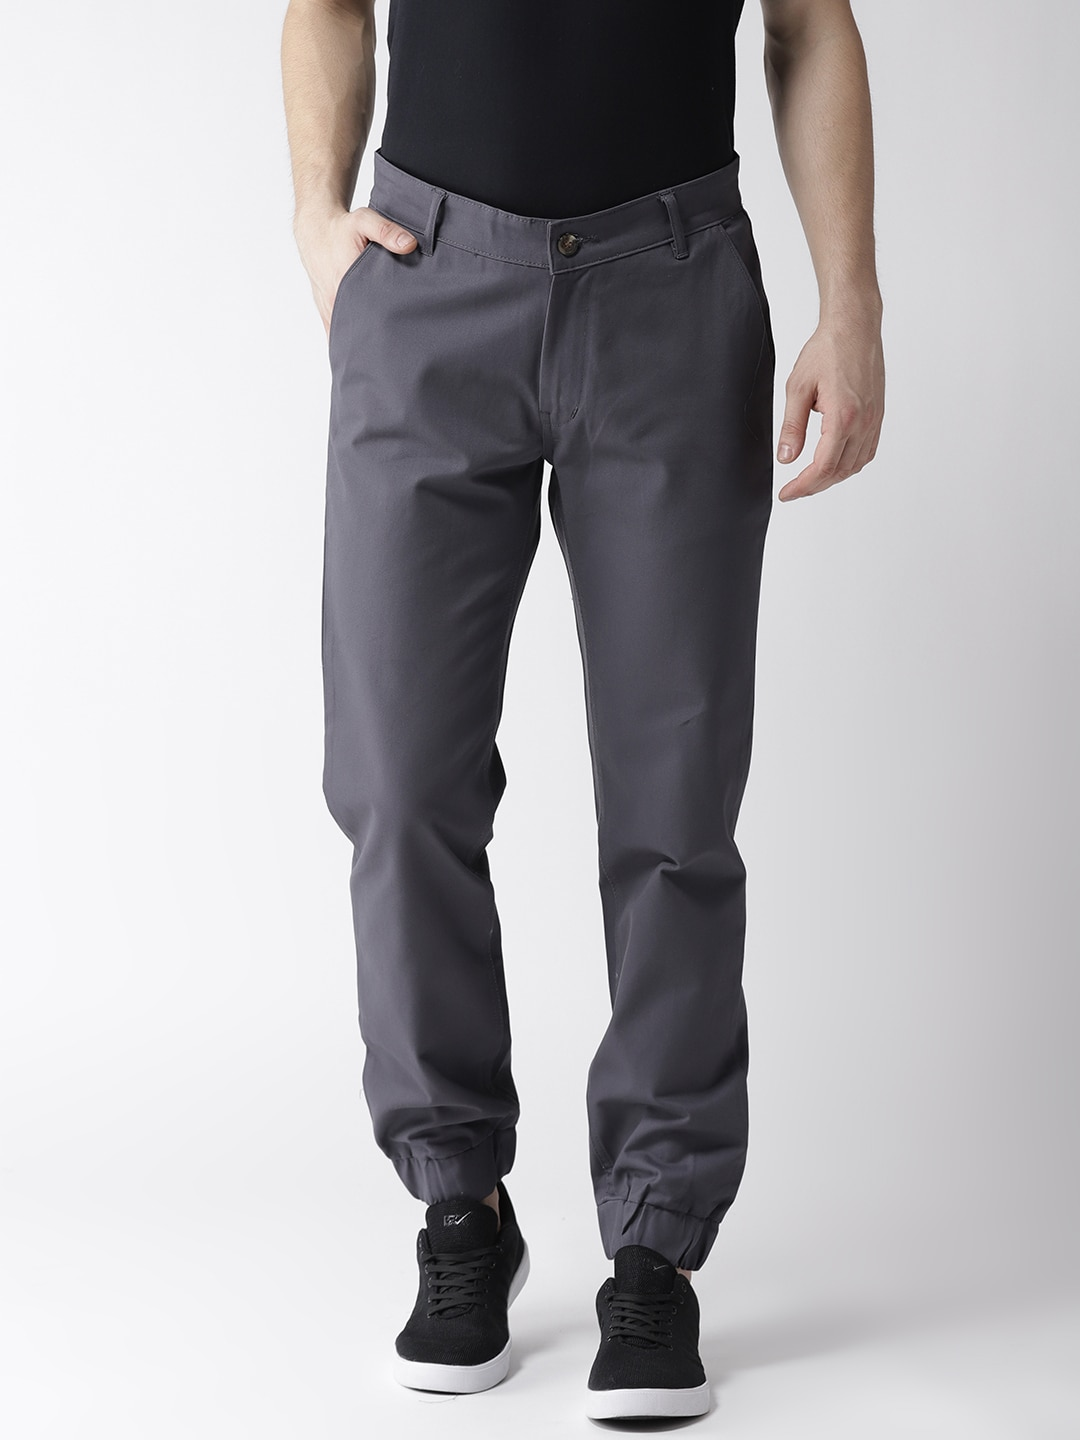 c7667bdb588b Combat Trousers 3 Tshirts - Buy Combat Trousers 3 Tshirts online in India